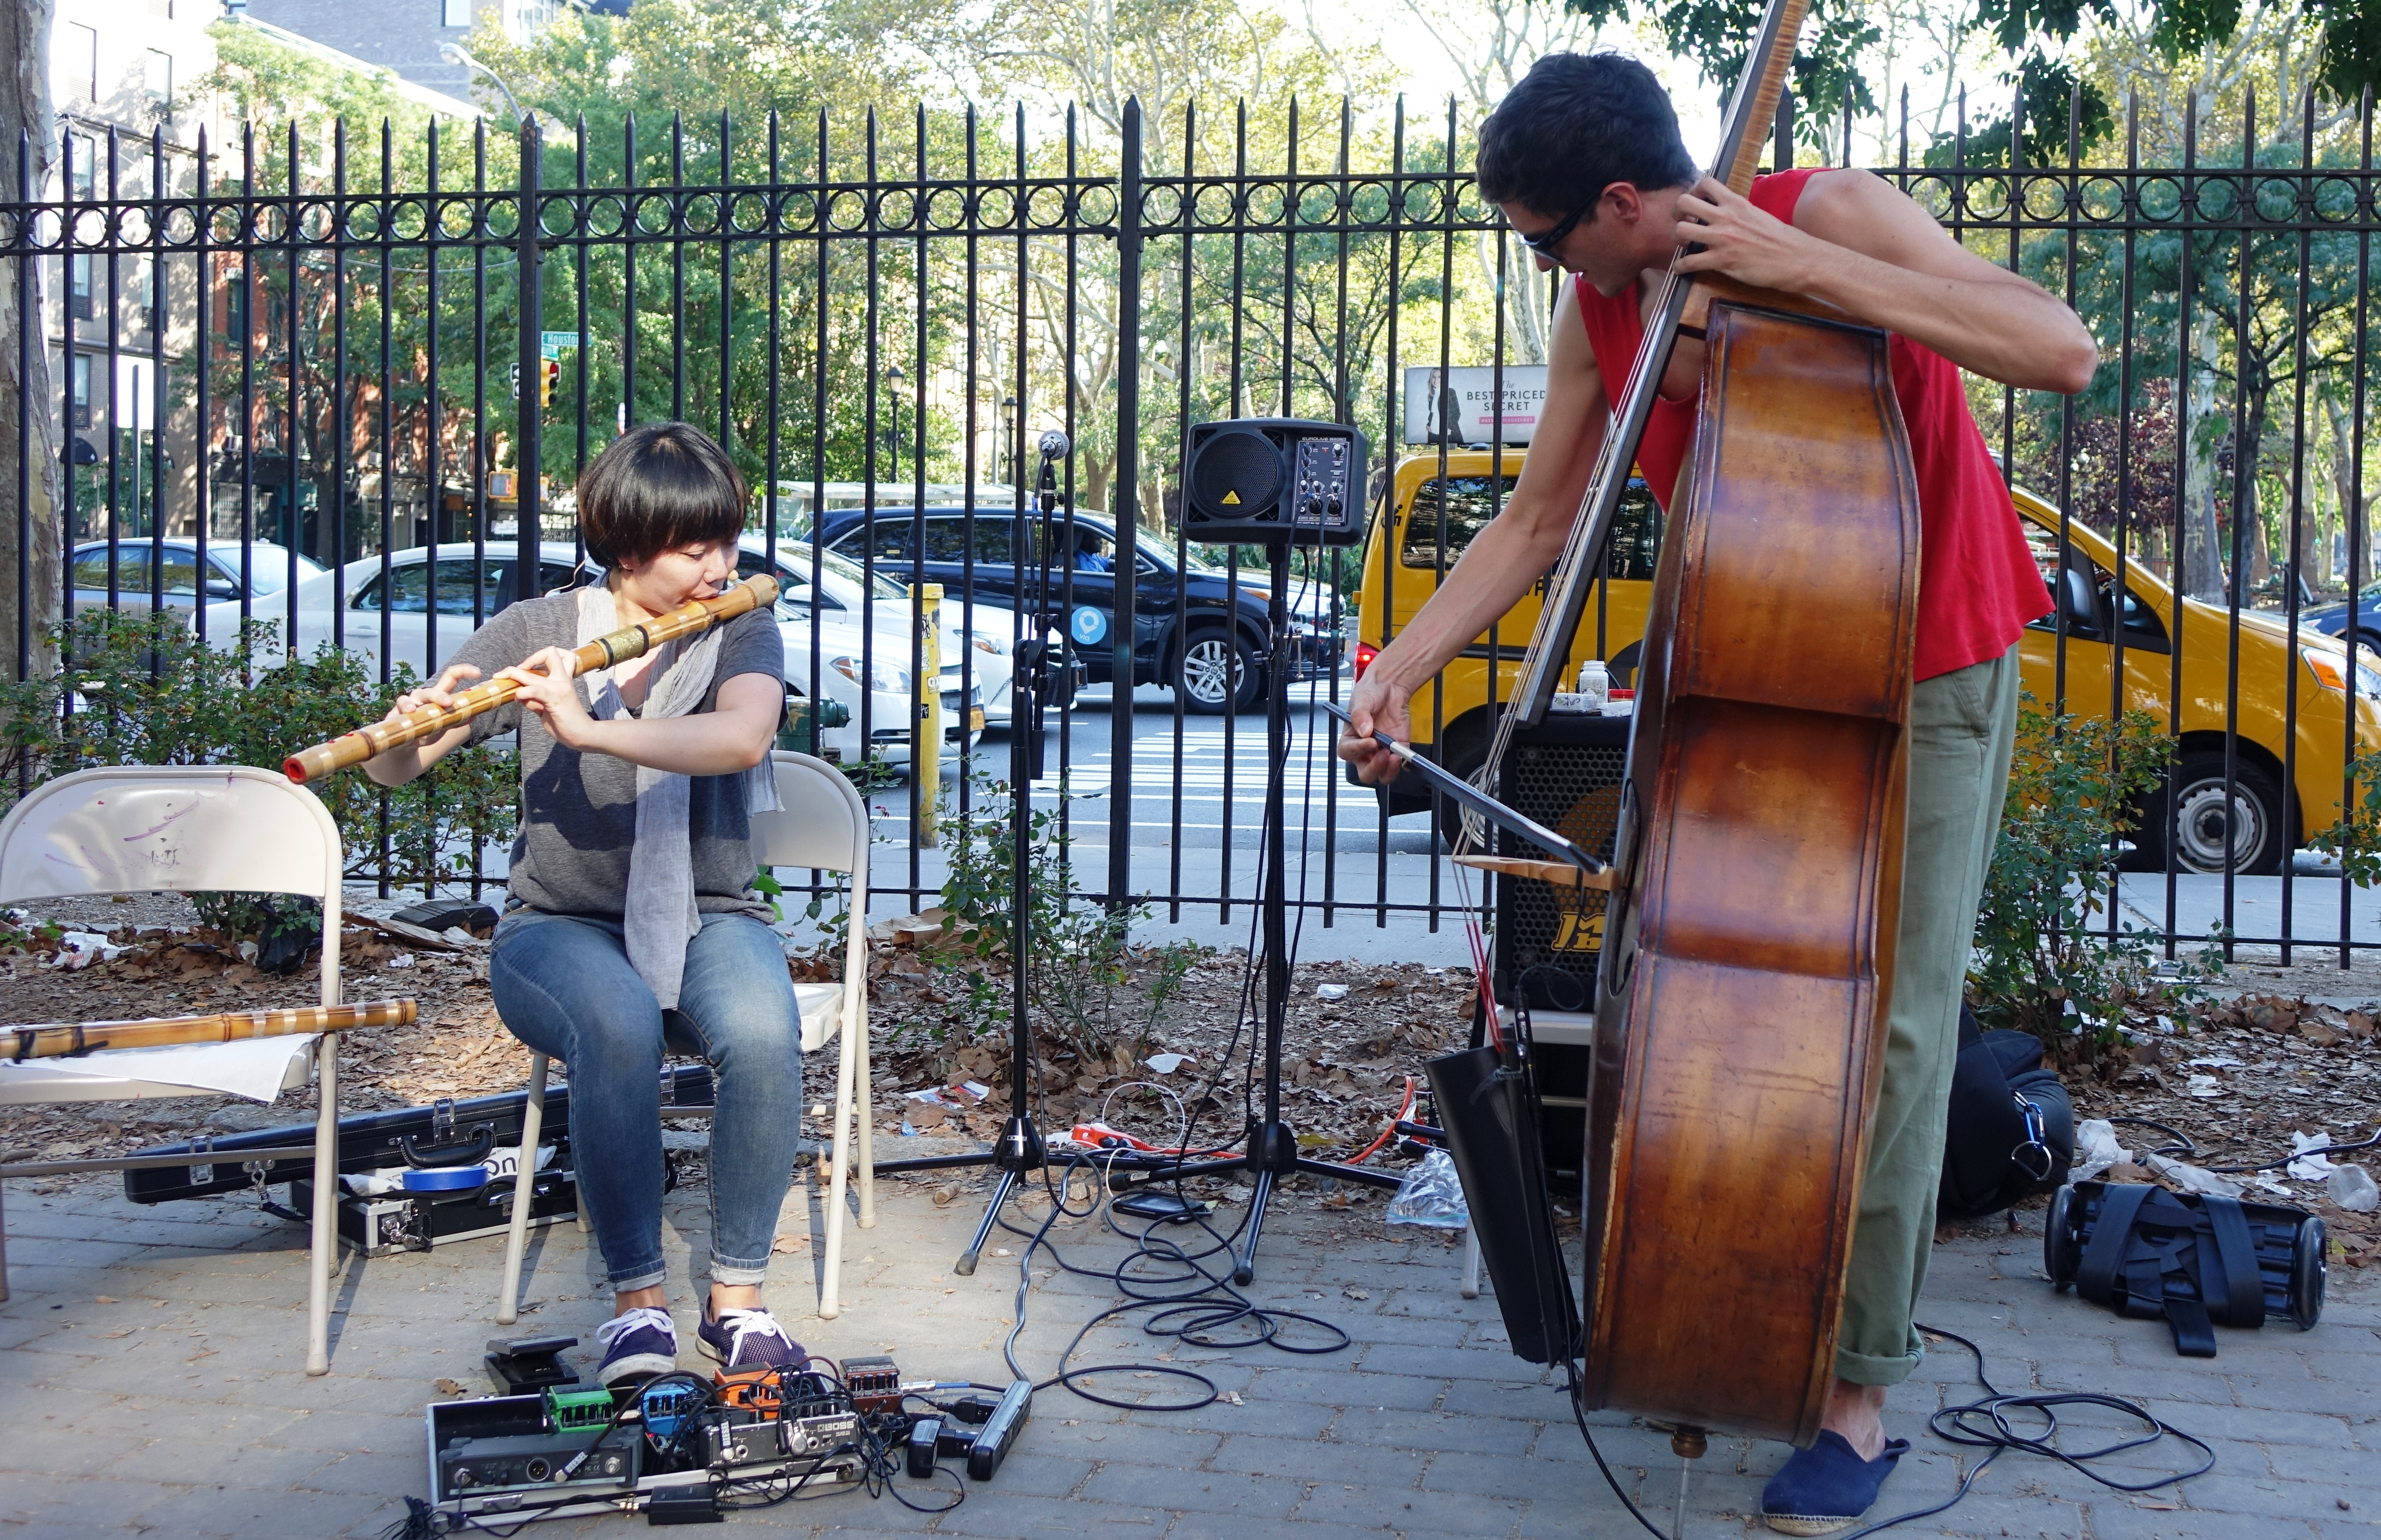 Seungmin Cha and Henry Fraser at First Street Green, NYC in September 2017